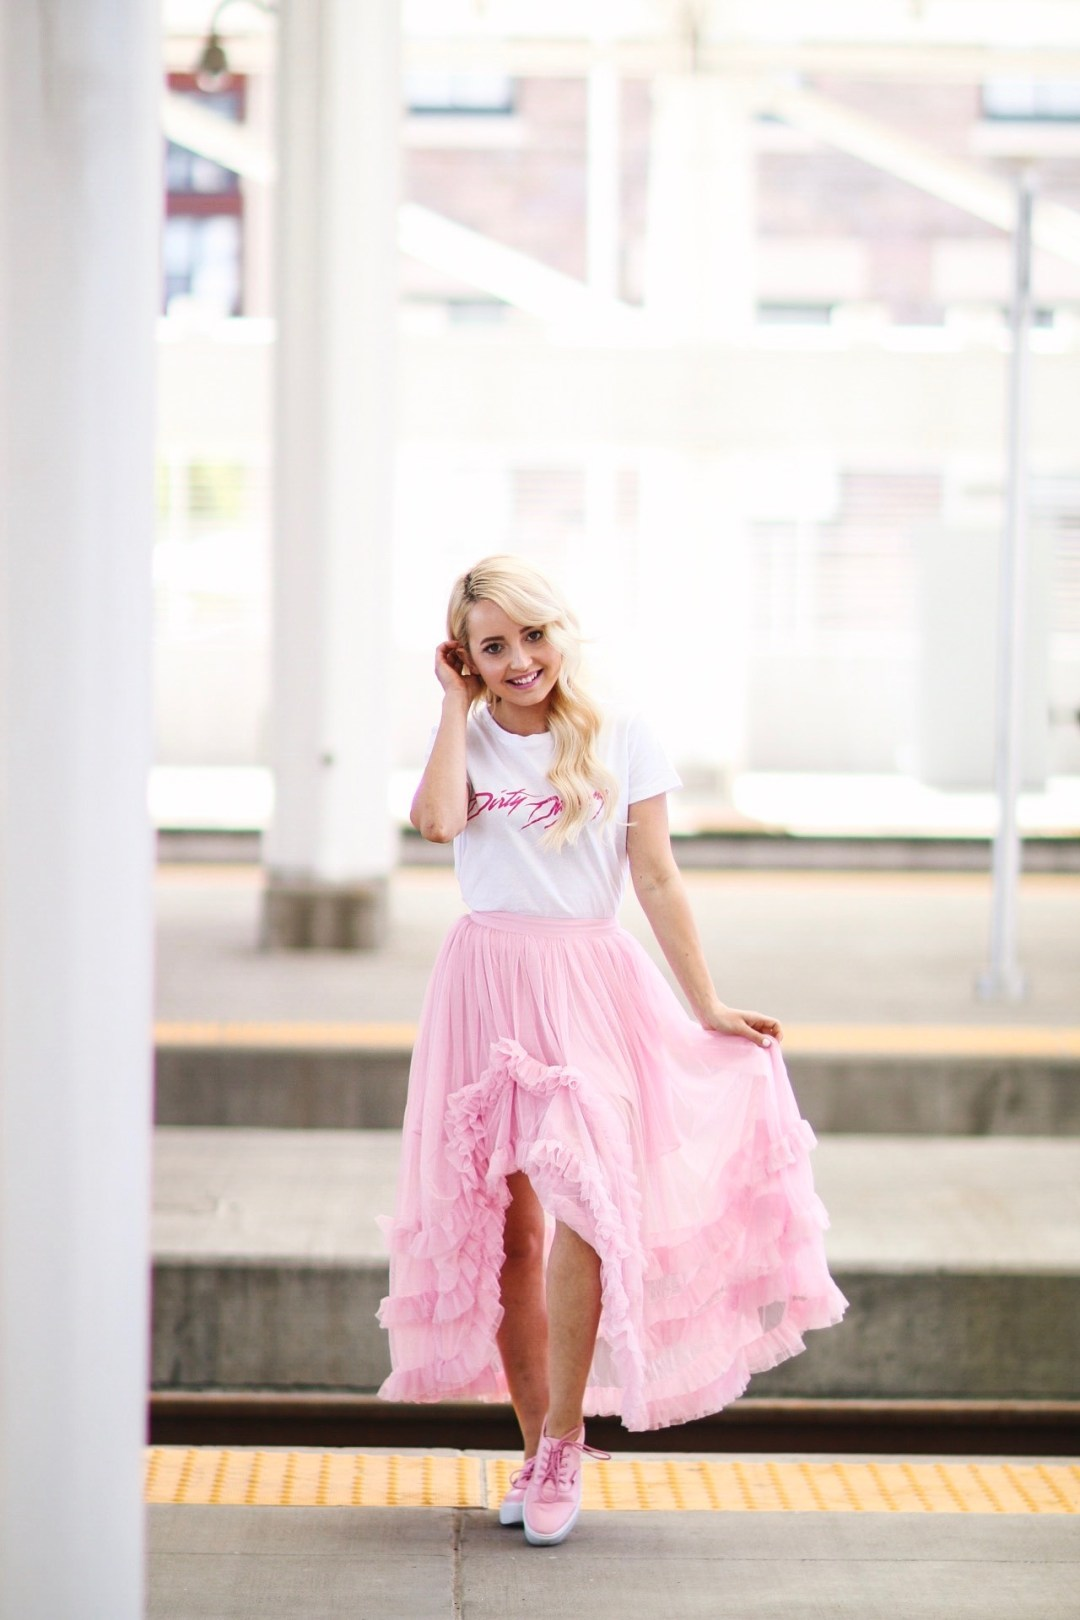 Alena Gidenko of modaprints.com styles a pink tulle skirt from ASOS and for the top a simple dirty dancing tee